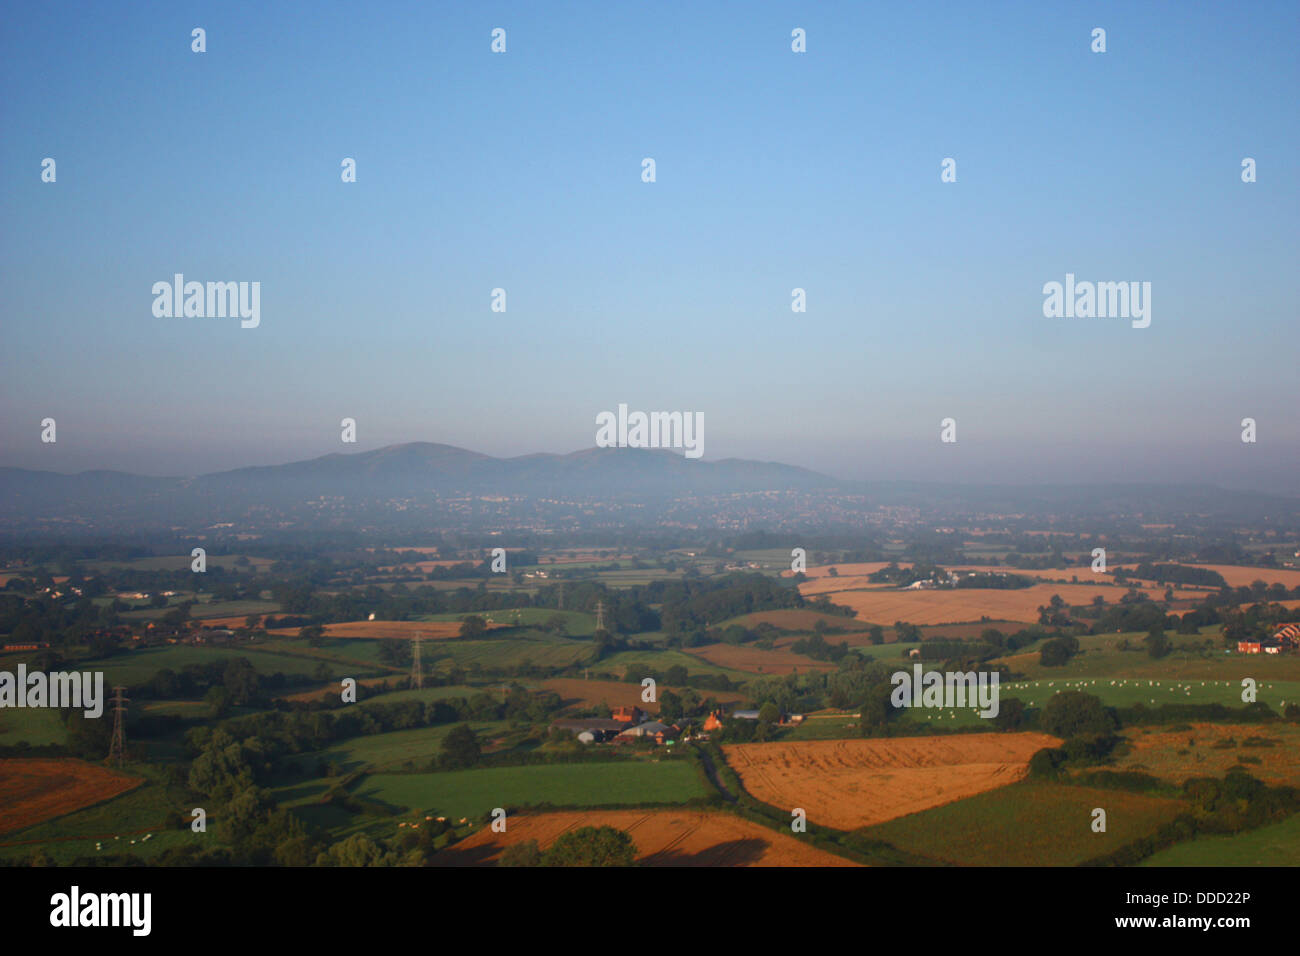 The malvern hills through mist from the air - Stock Image